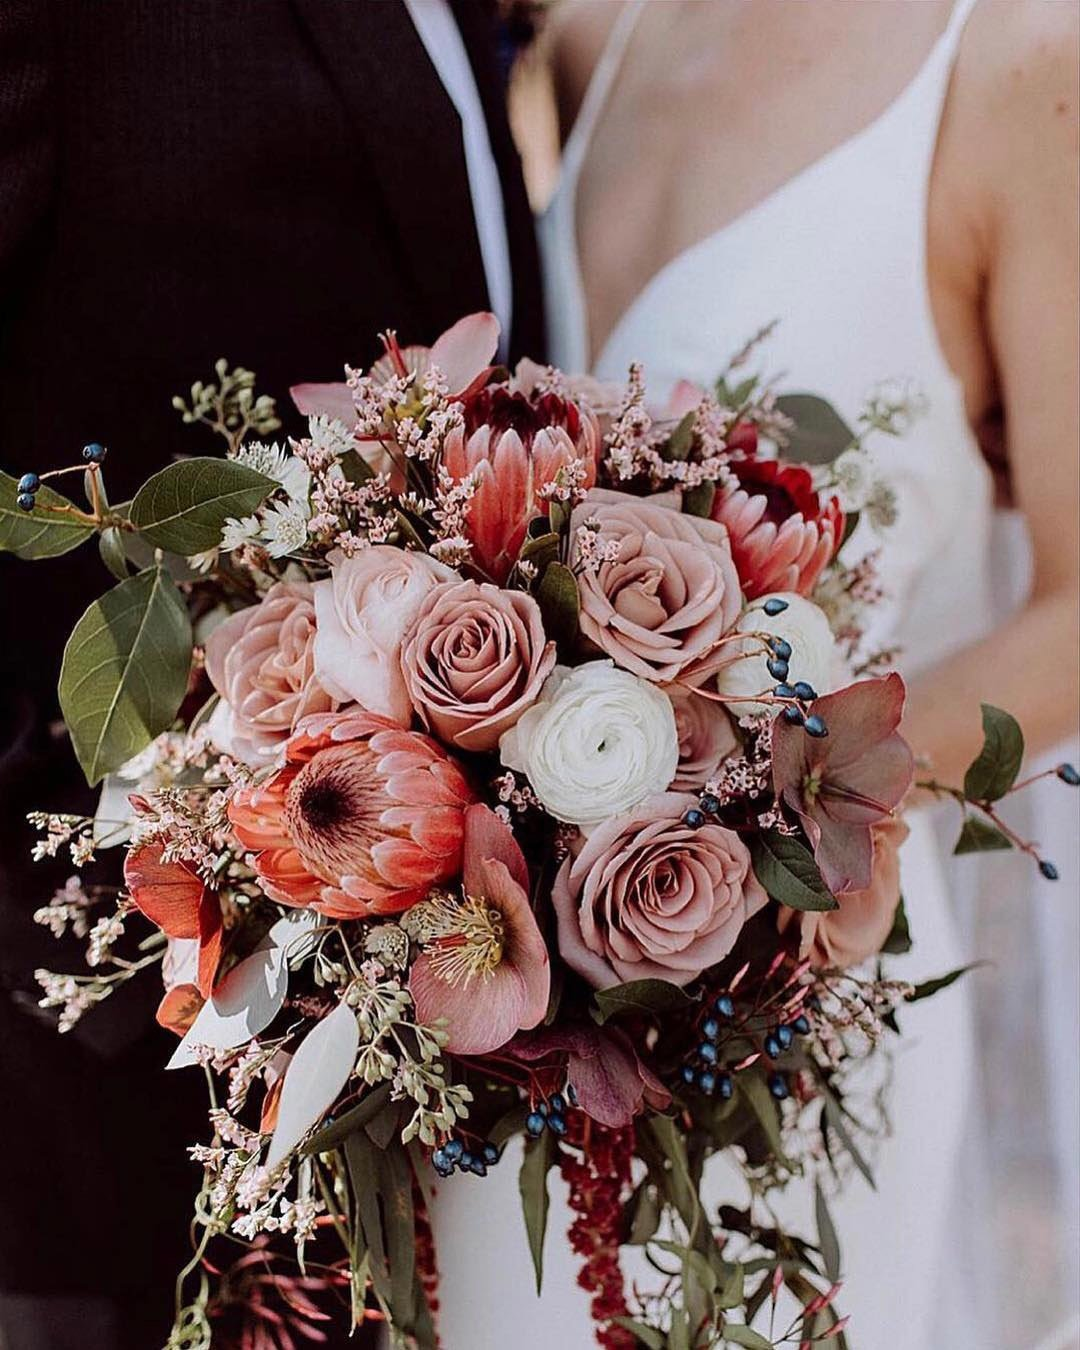 wedding colors Rose Gold Burgundy Oatmeal Beige newlyweds wedding bouquet wedding color palette